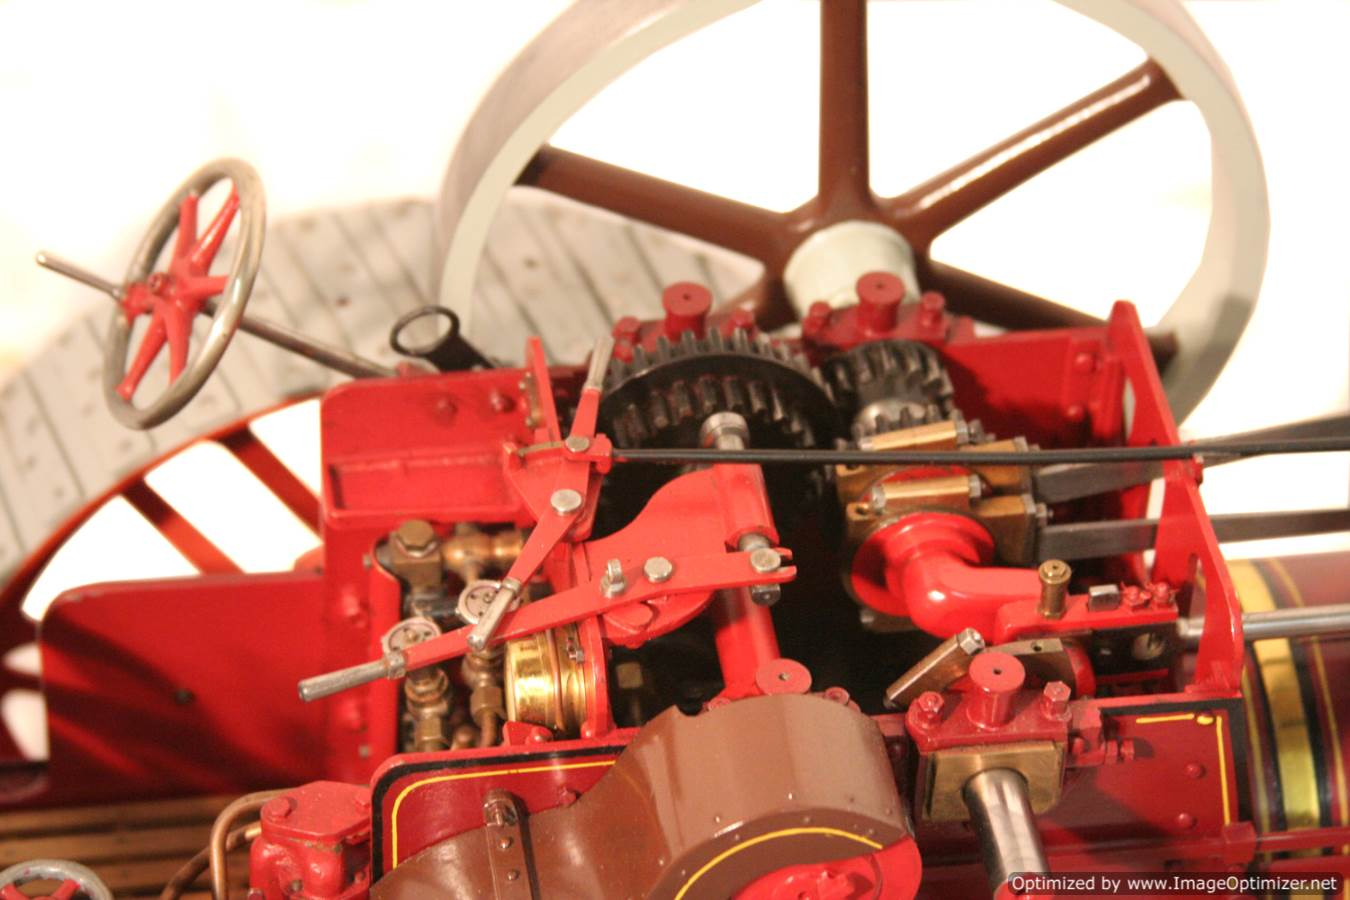 test Royal Chester Alchin Traction Engine for sale 05 Optimized